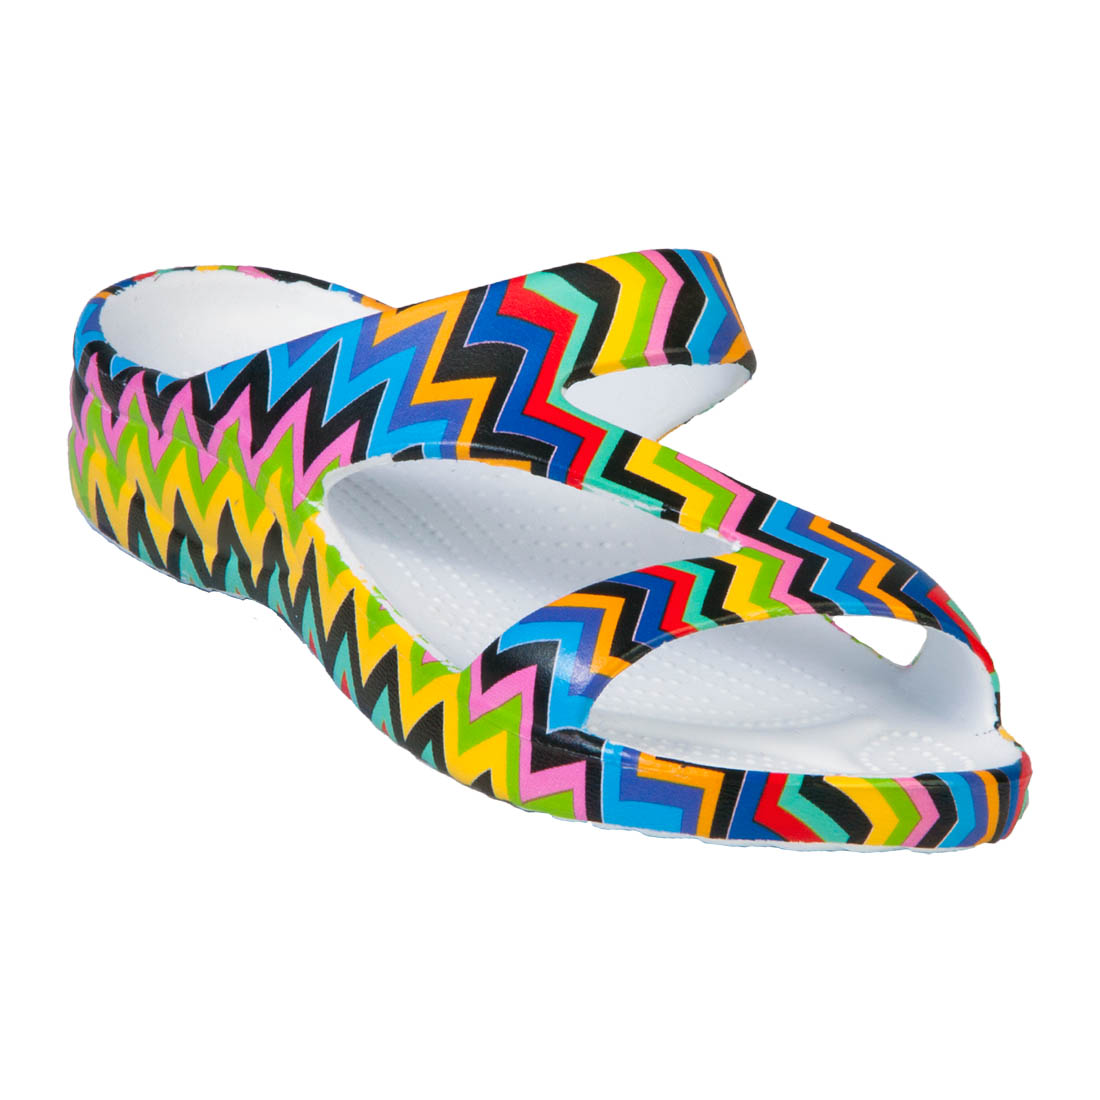 Kids' Loudmouth Z Sandals